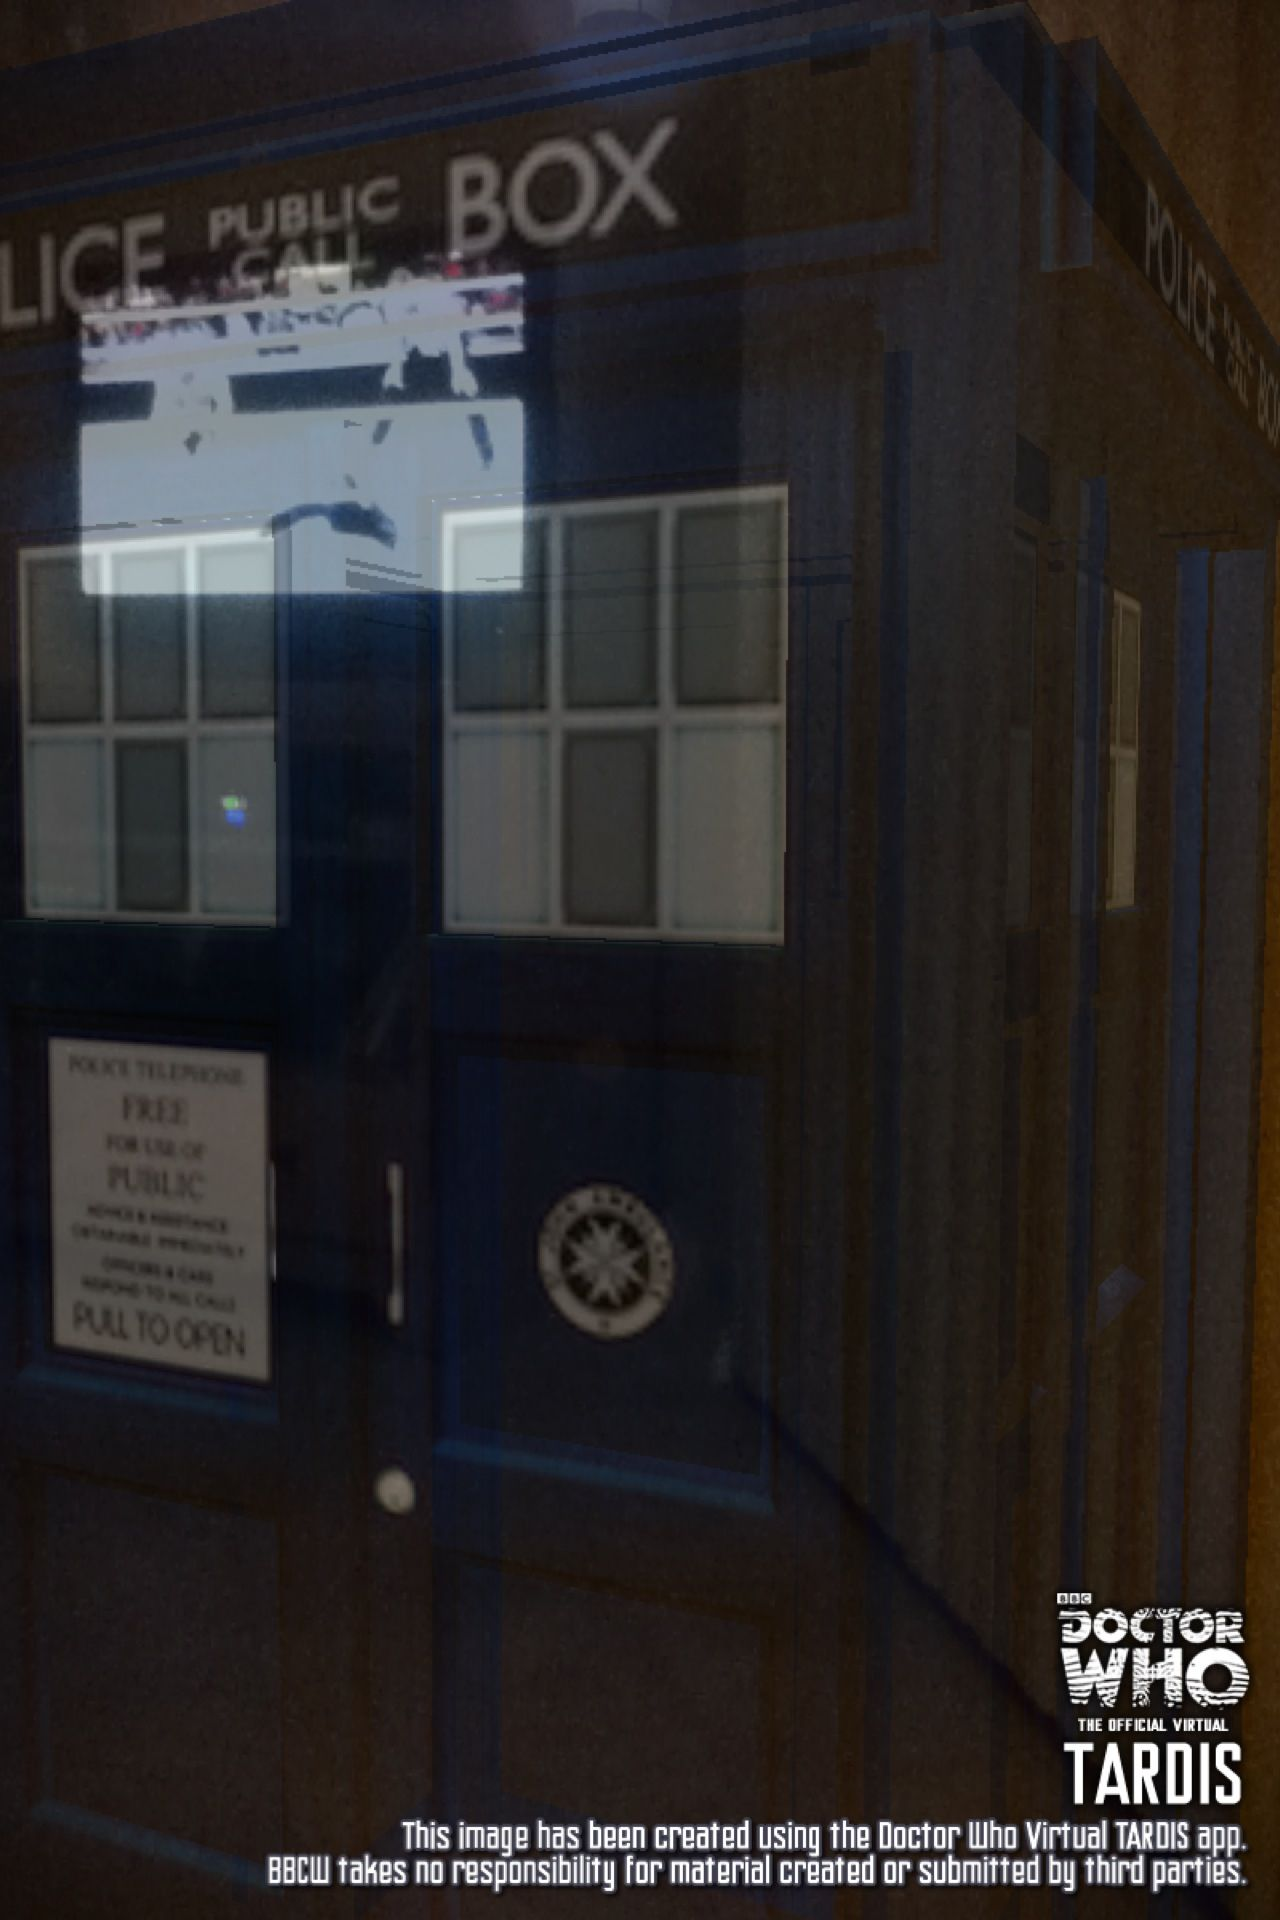 I'm watching the TARDIS dematerialize.... this is the best day of my life!!!!